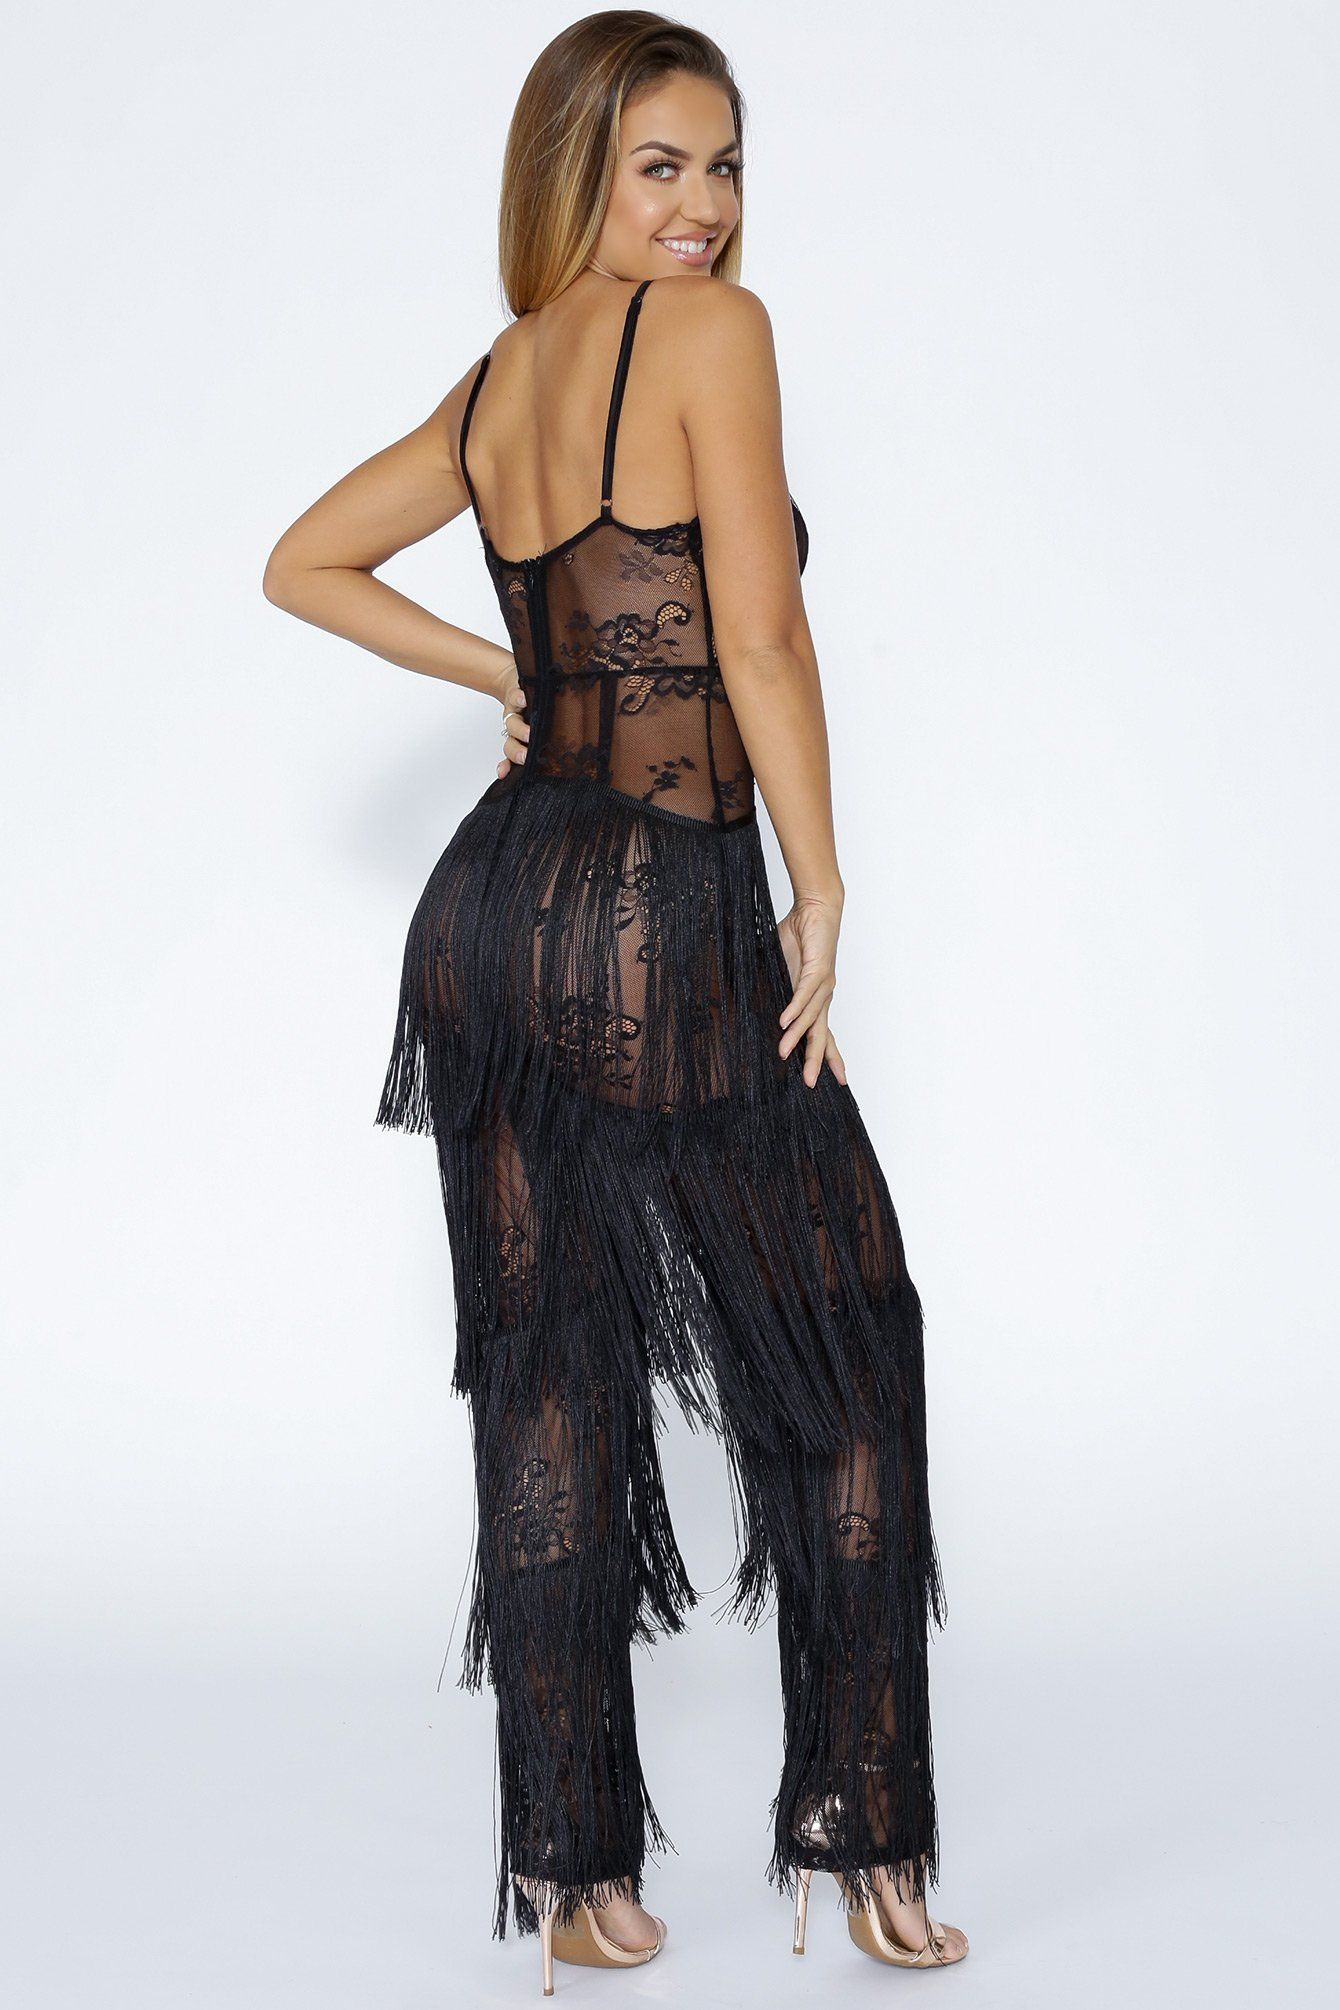 9b76bd27f Dreaming Tassel Lace Jumpsuit Lace Jumpsuit, Cute Rompers, Playsuit,  Tassels, Cute Short